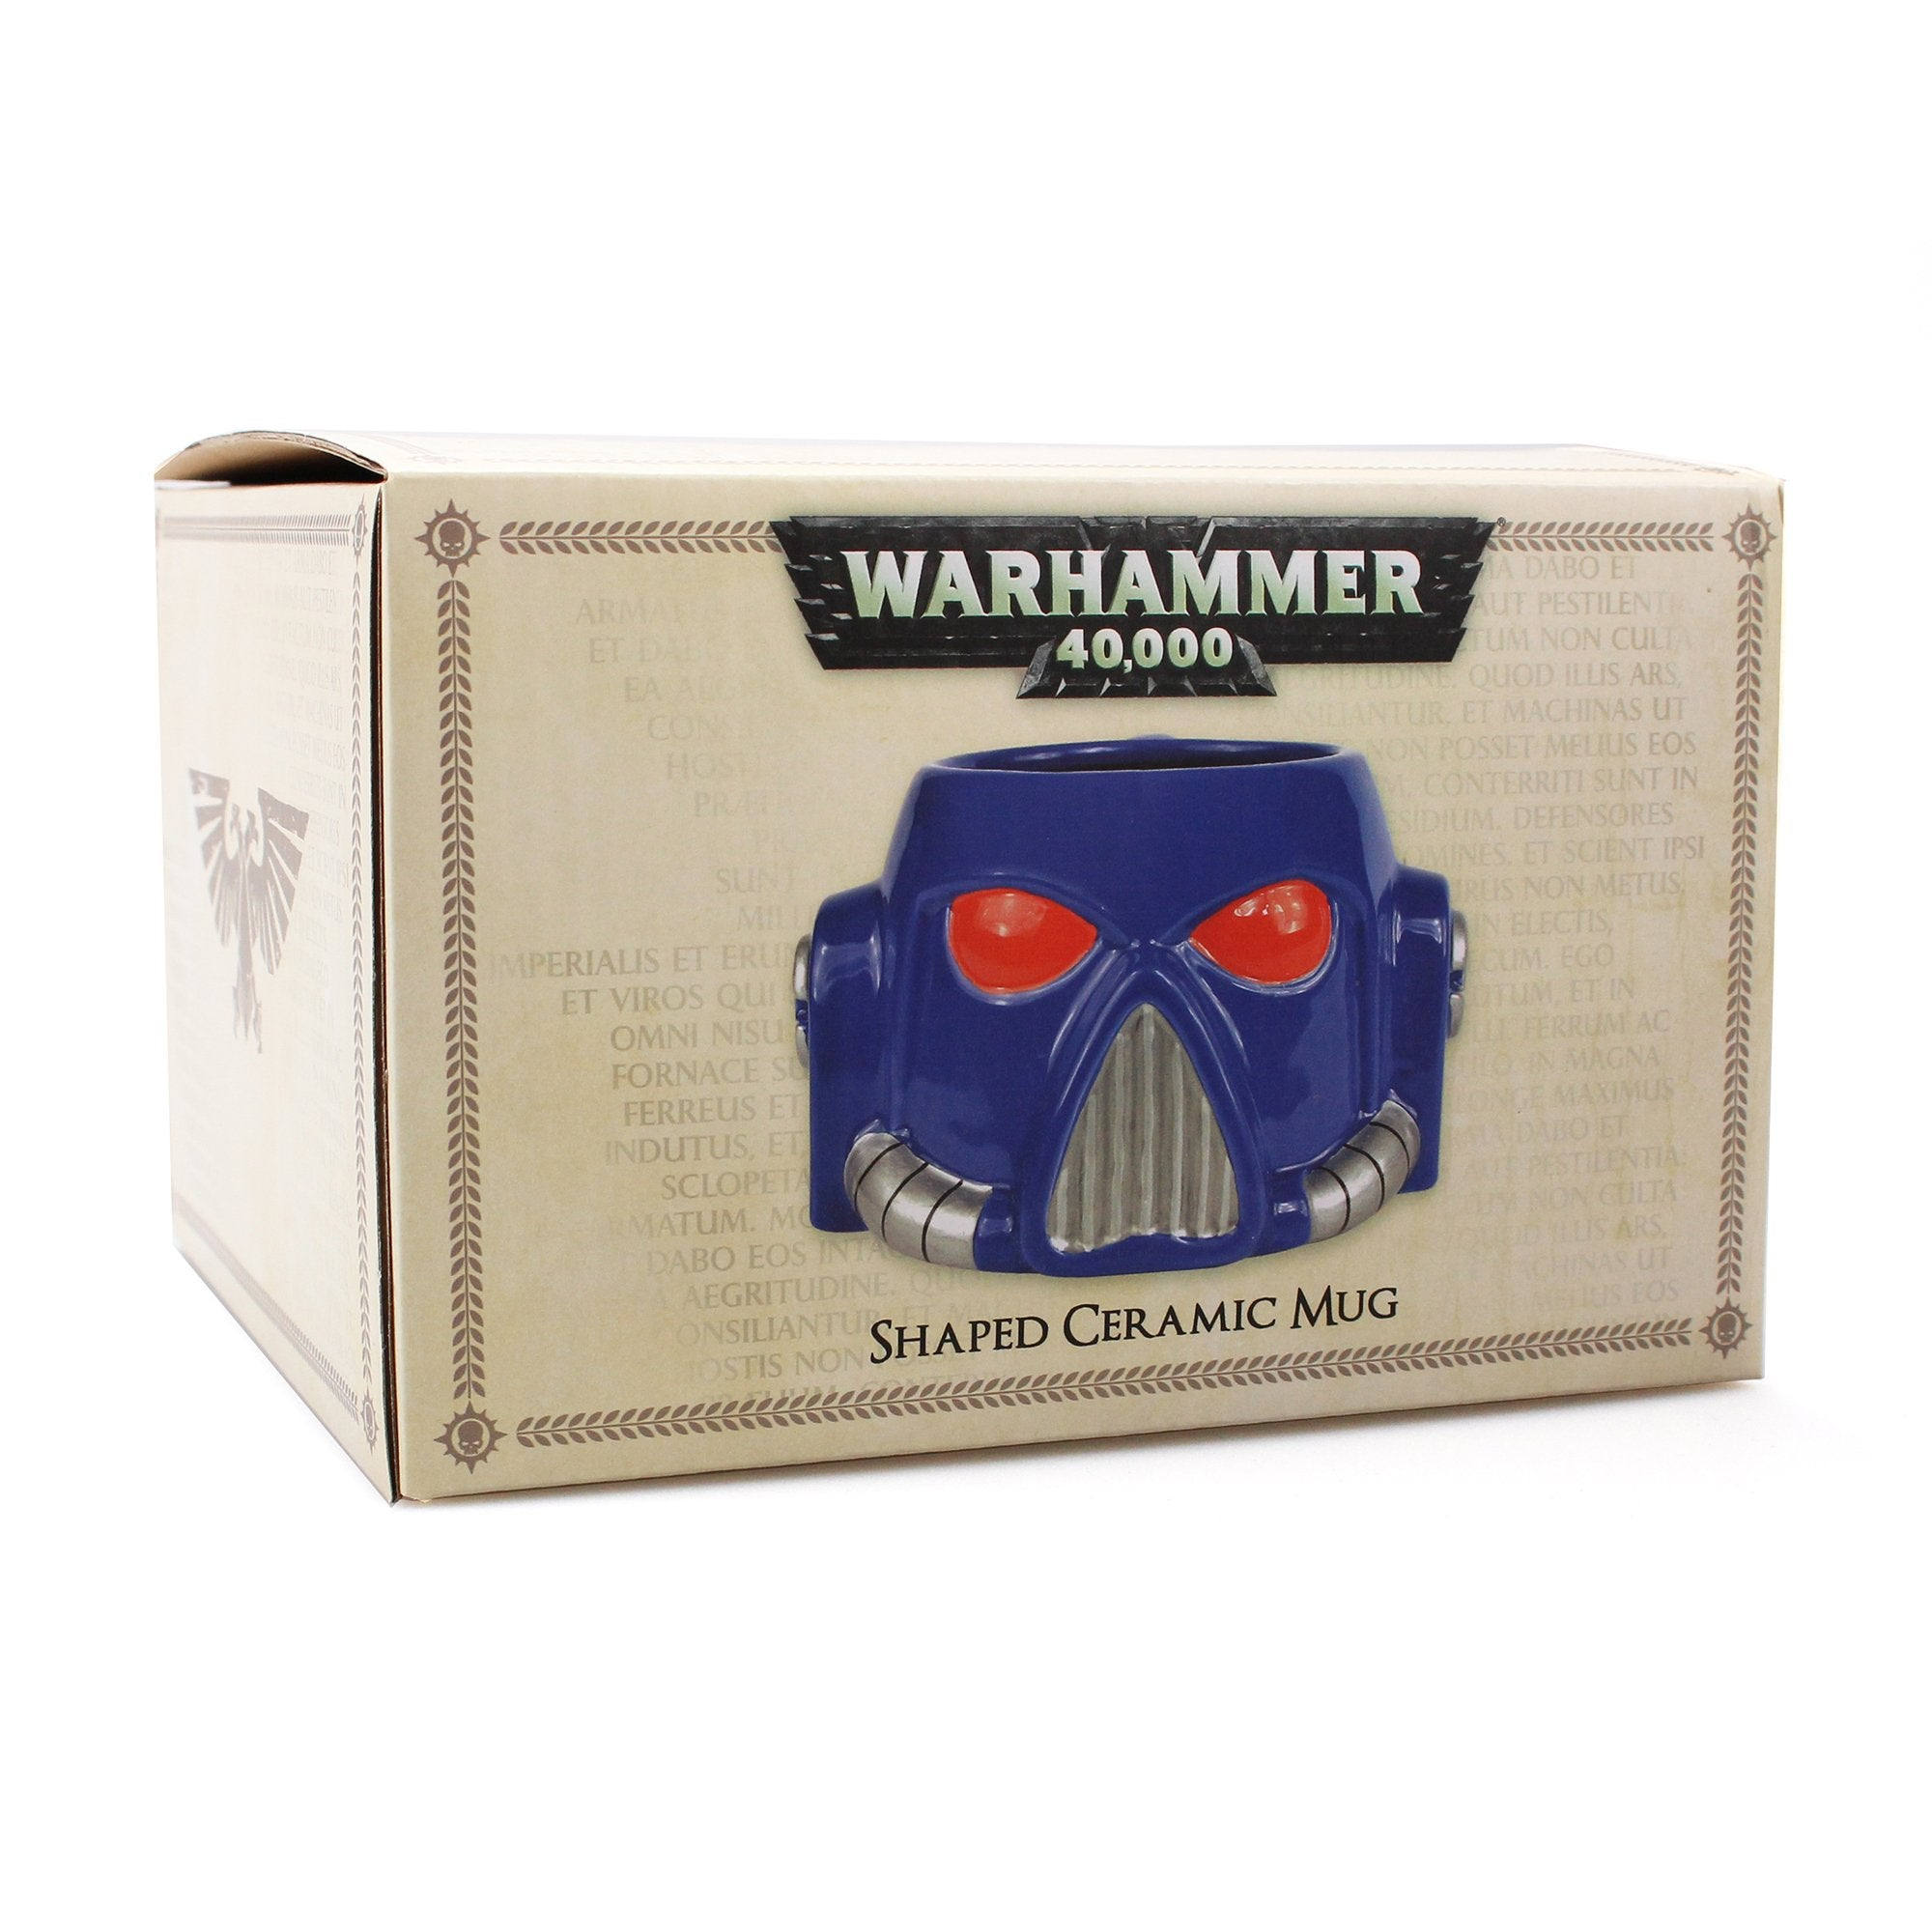 Warhammer 40,000 Shaped Mug - Space Marine - Half Moon Bay US